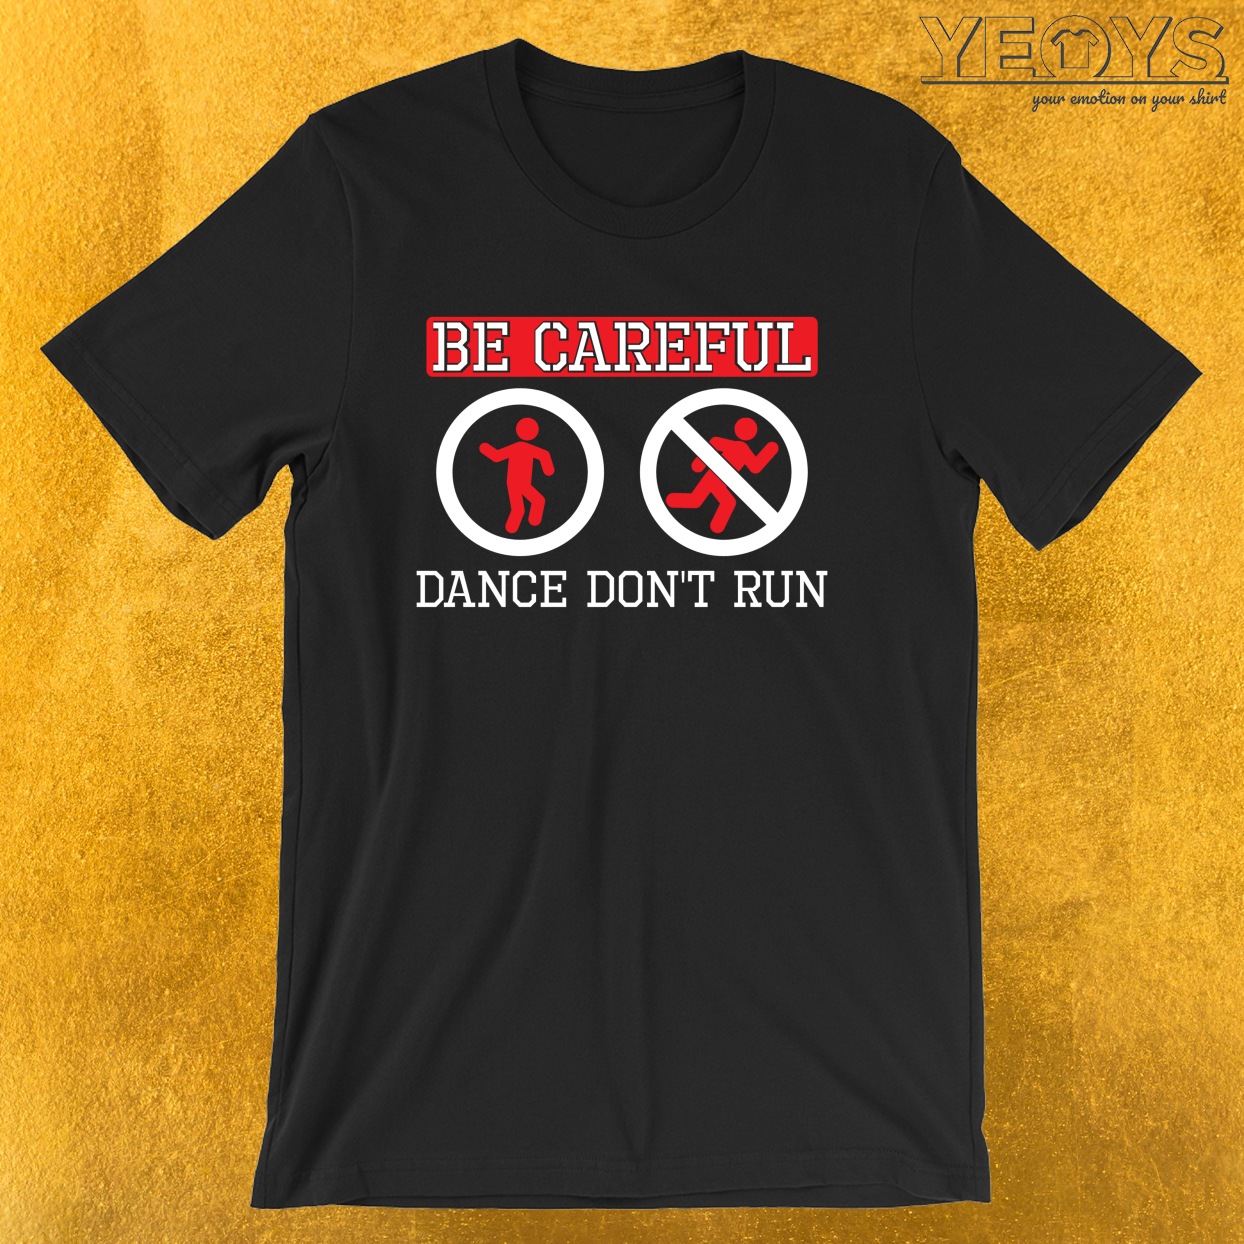 Be Careful Dance Don't Run – Funny Dj Quotes Tee